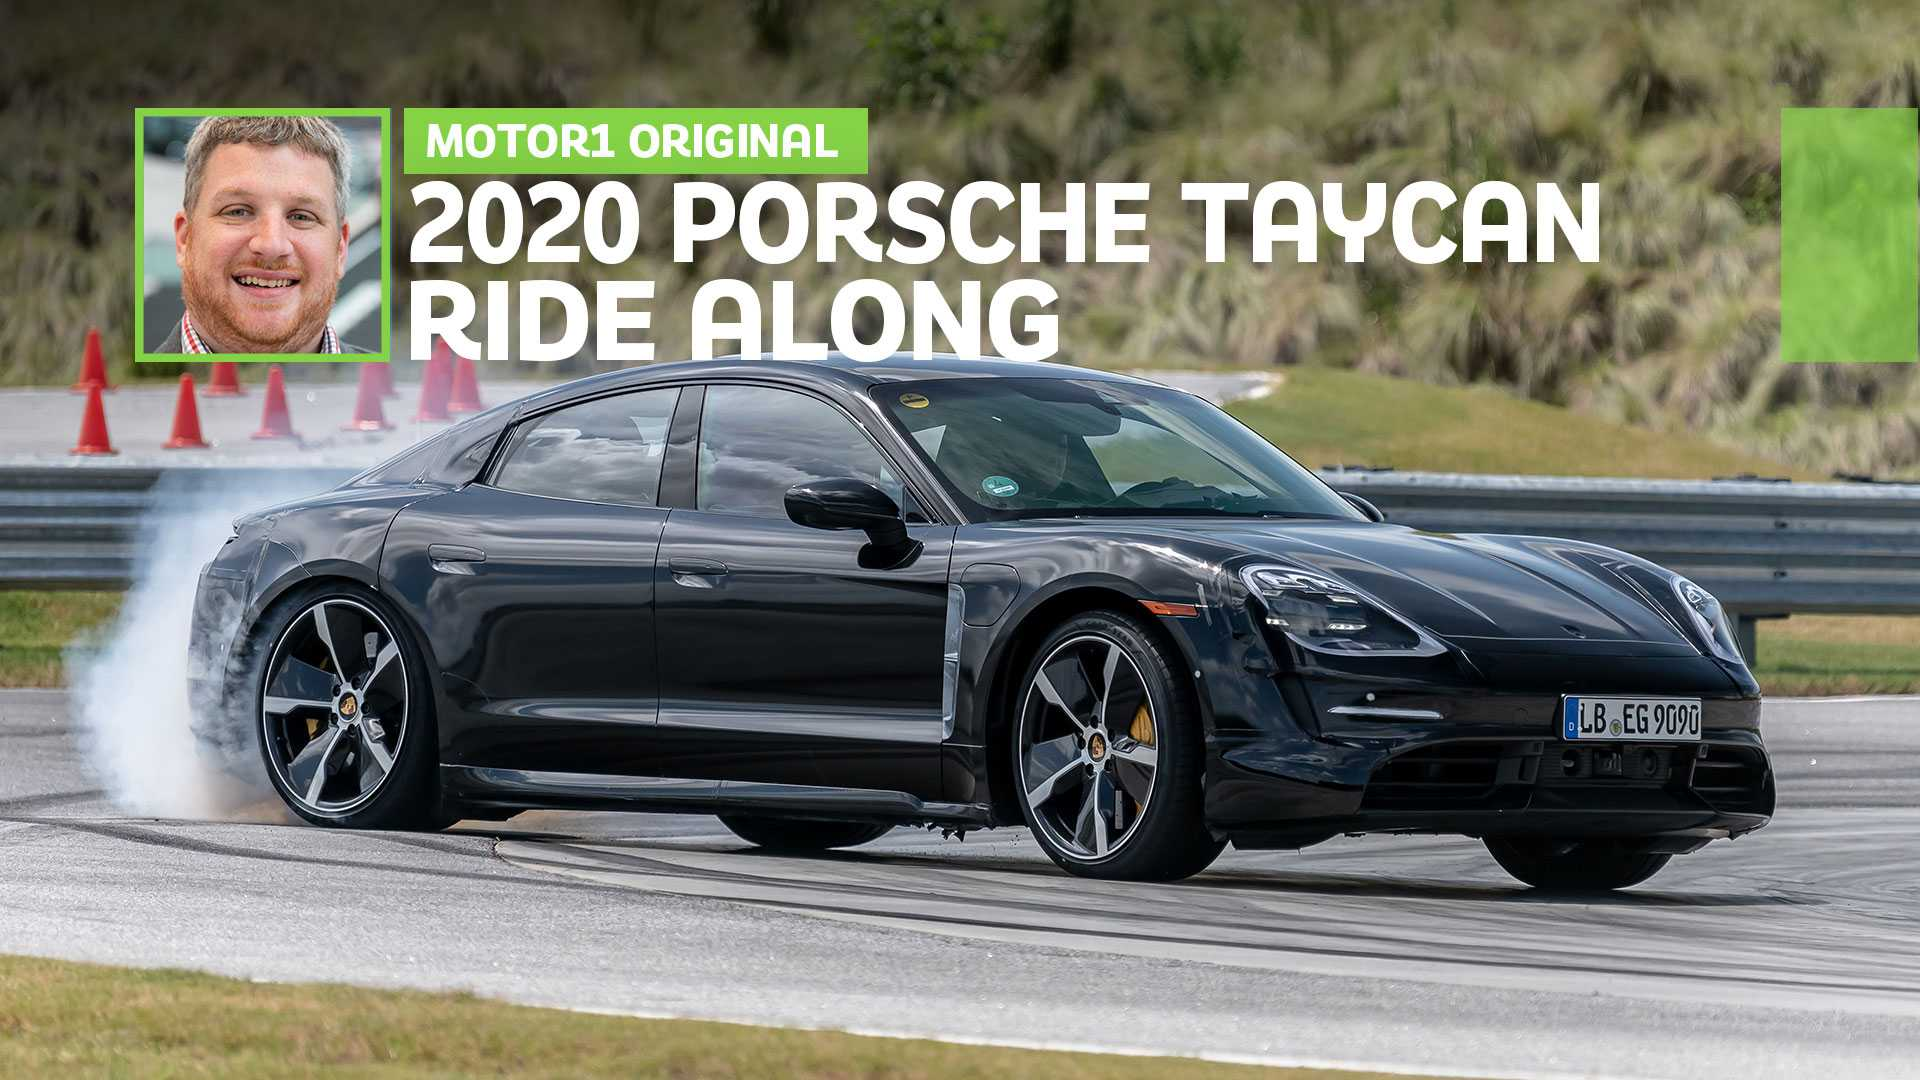 2020 Porsche Taycan First Ride Mission E Ccomplished